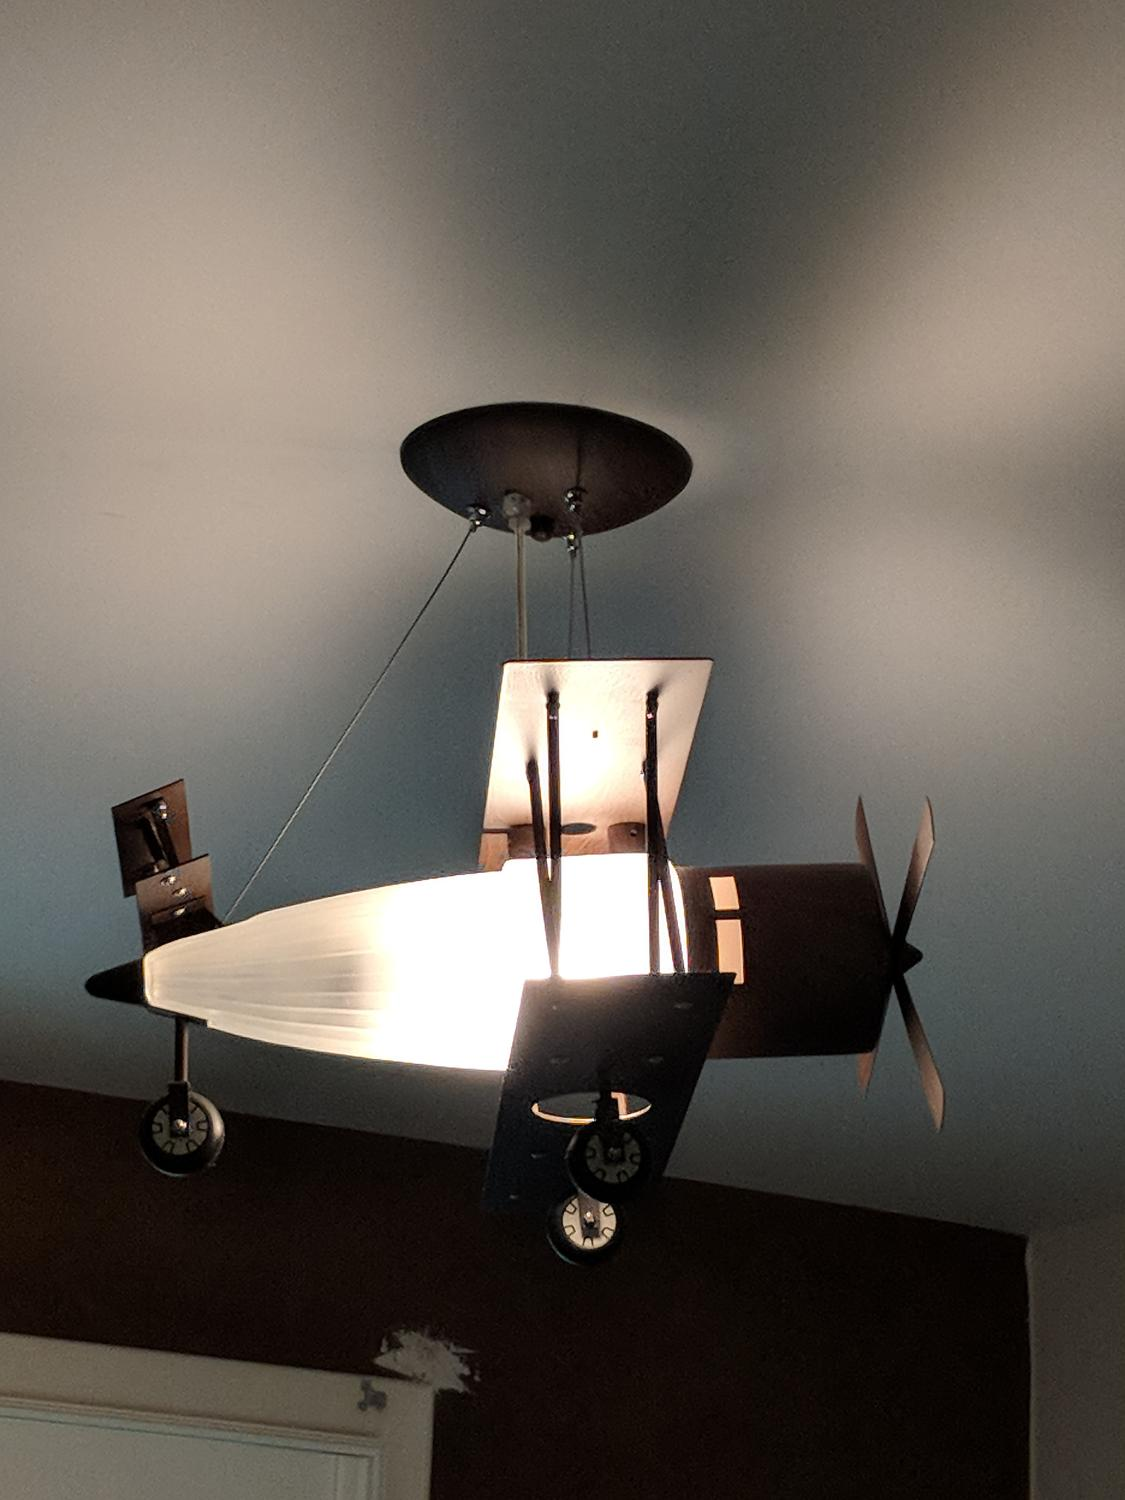 Airplane ceiling light fixture